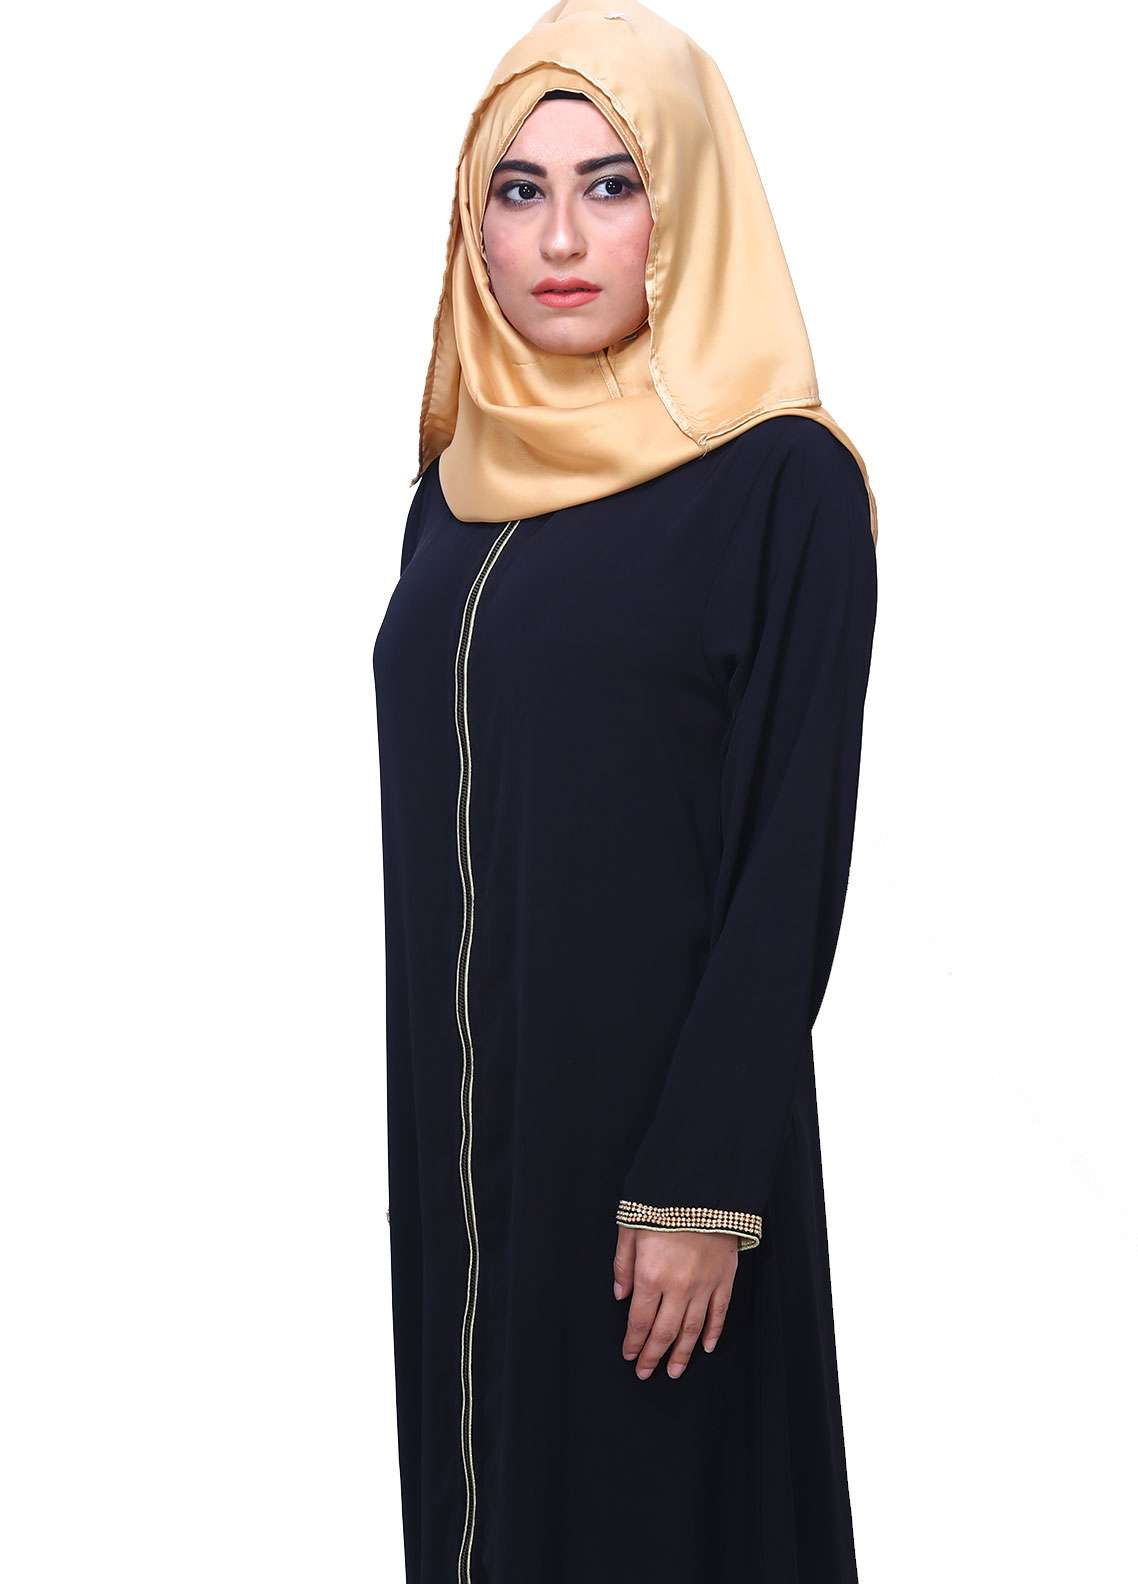 Black Georgette Formal Style Abaya for Women - ABY18 010